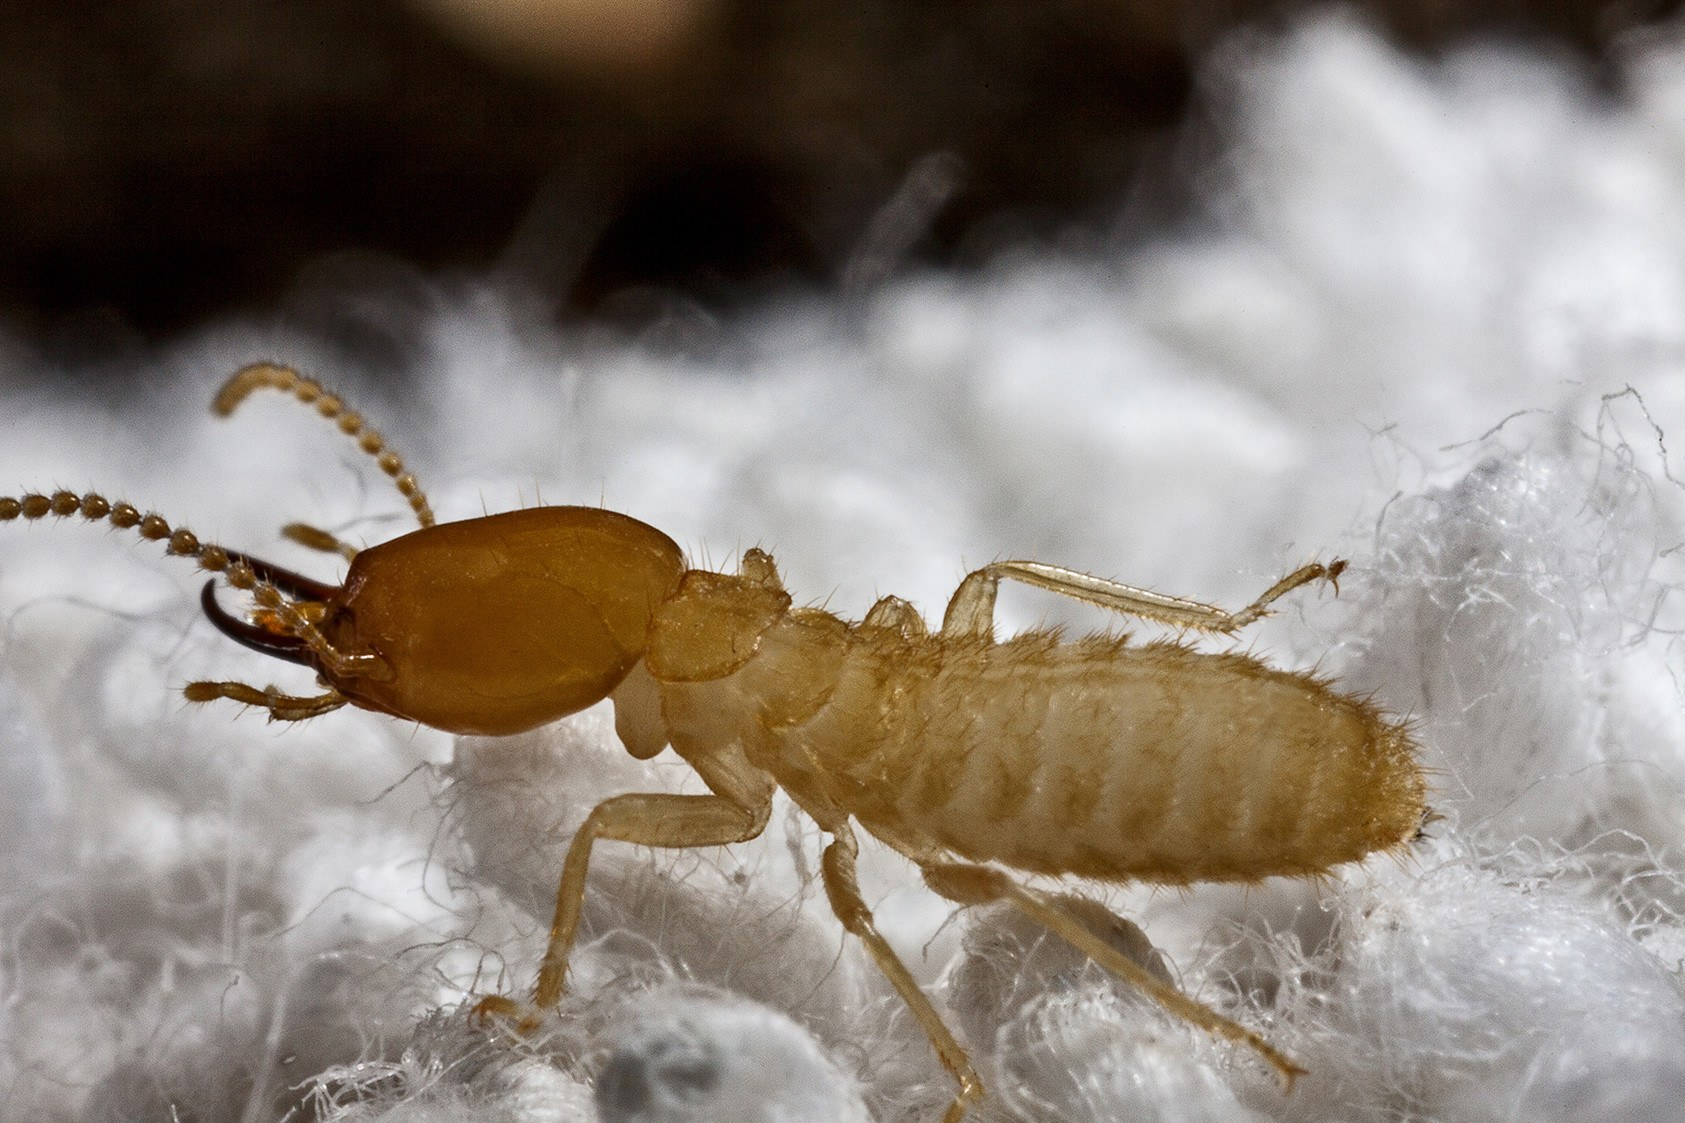 Close up of Formosan Termite.